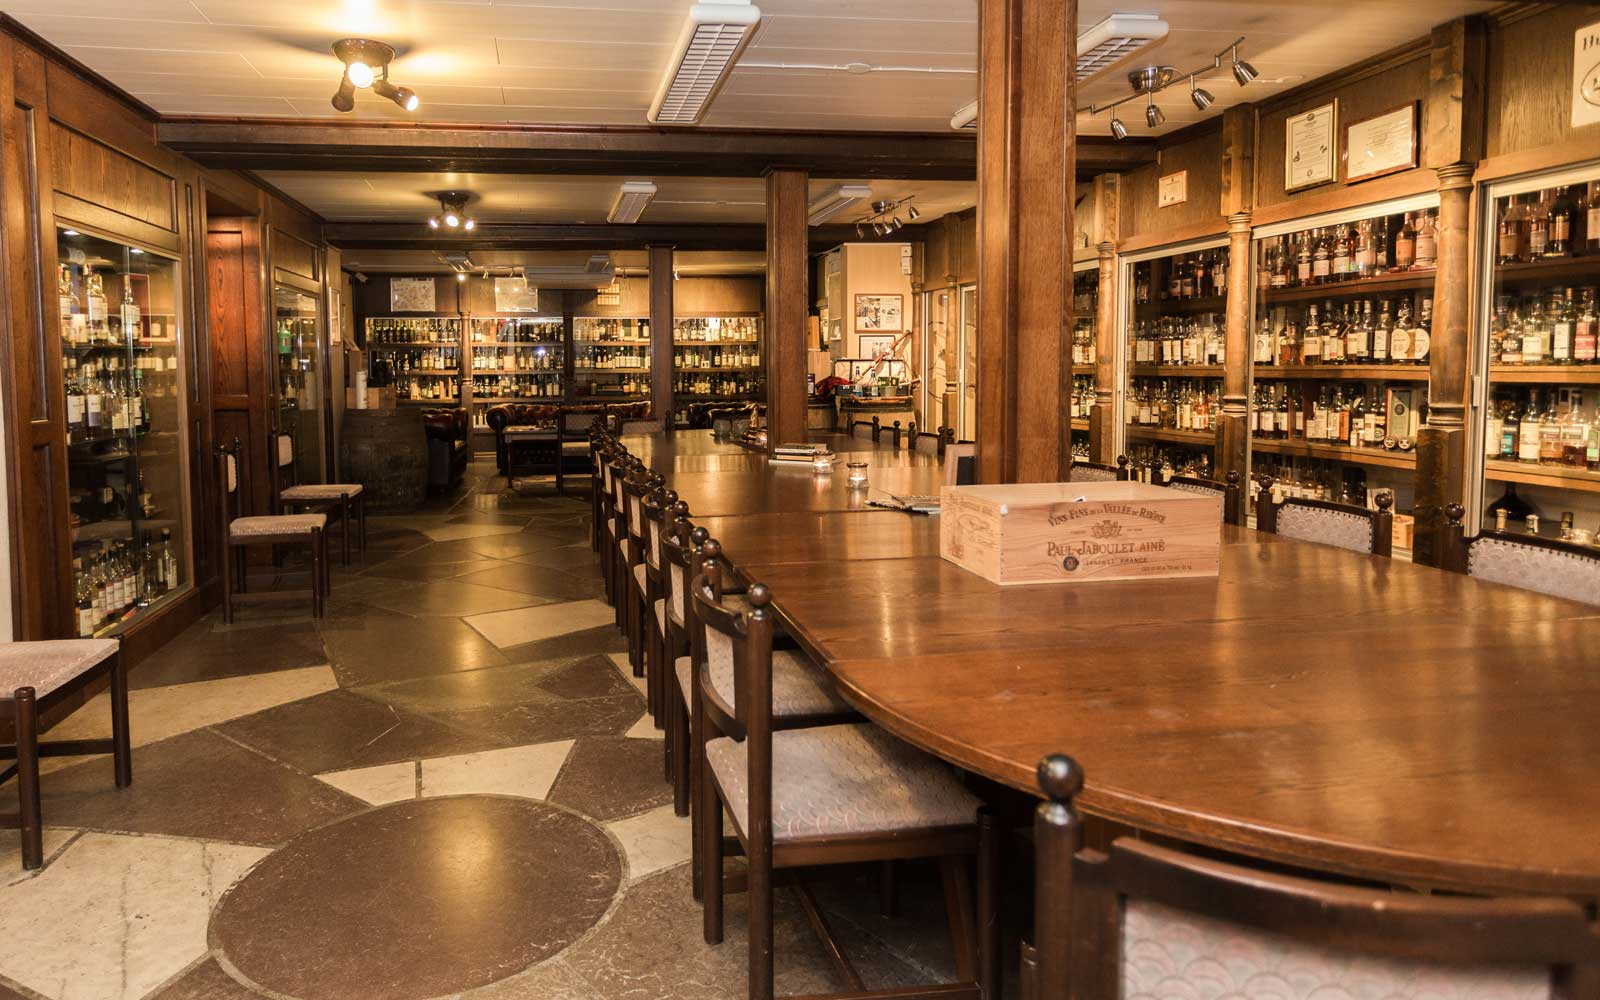 Hotel Skansen's whisky basement is illuminated with thousands of rare blends from around the world.